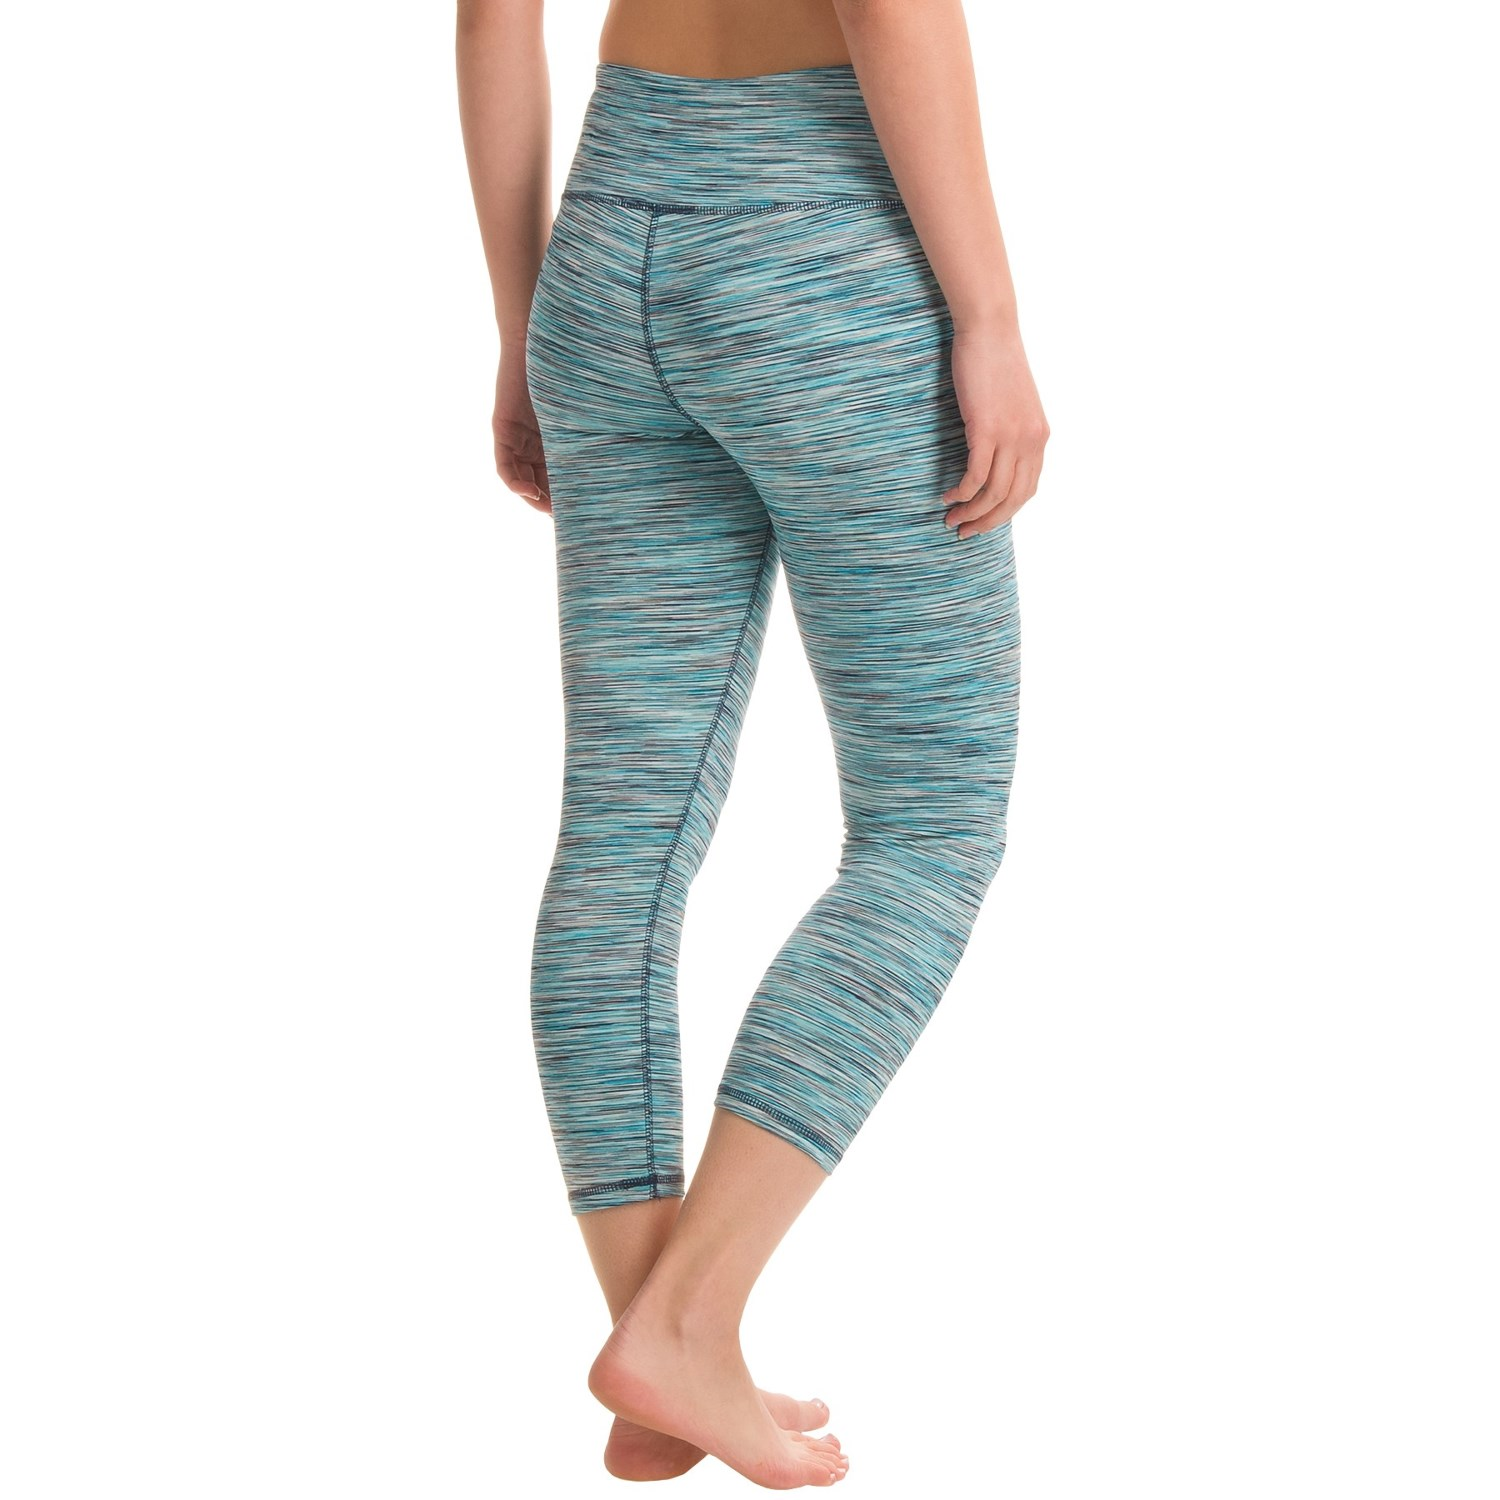 RBX Space-Dye Yoga Capri Leggings (For Women) - Save 50%